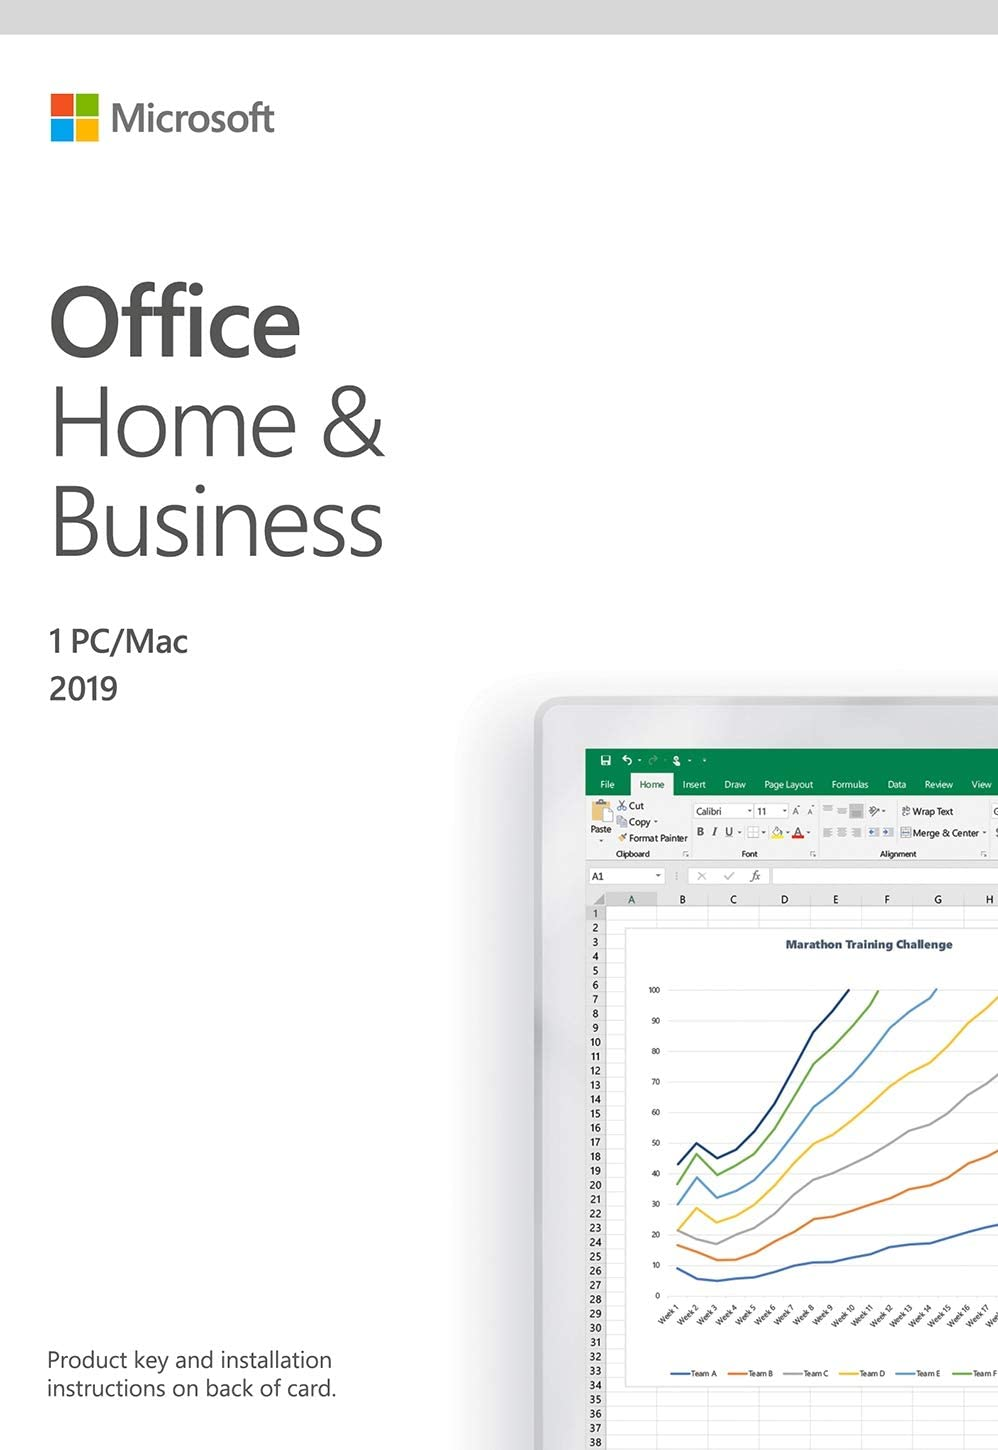 MS OFFICE 2019 HOME & BUSINESS EN OEM, #T5D-03441